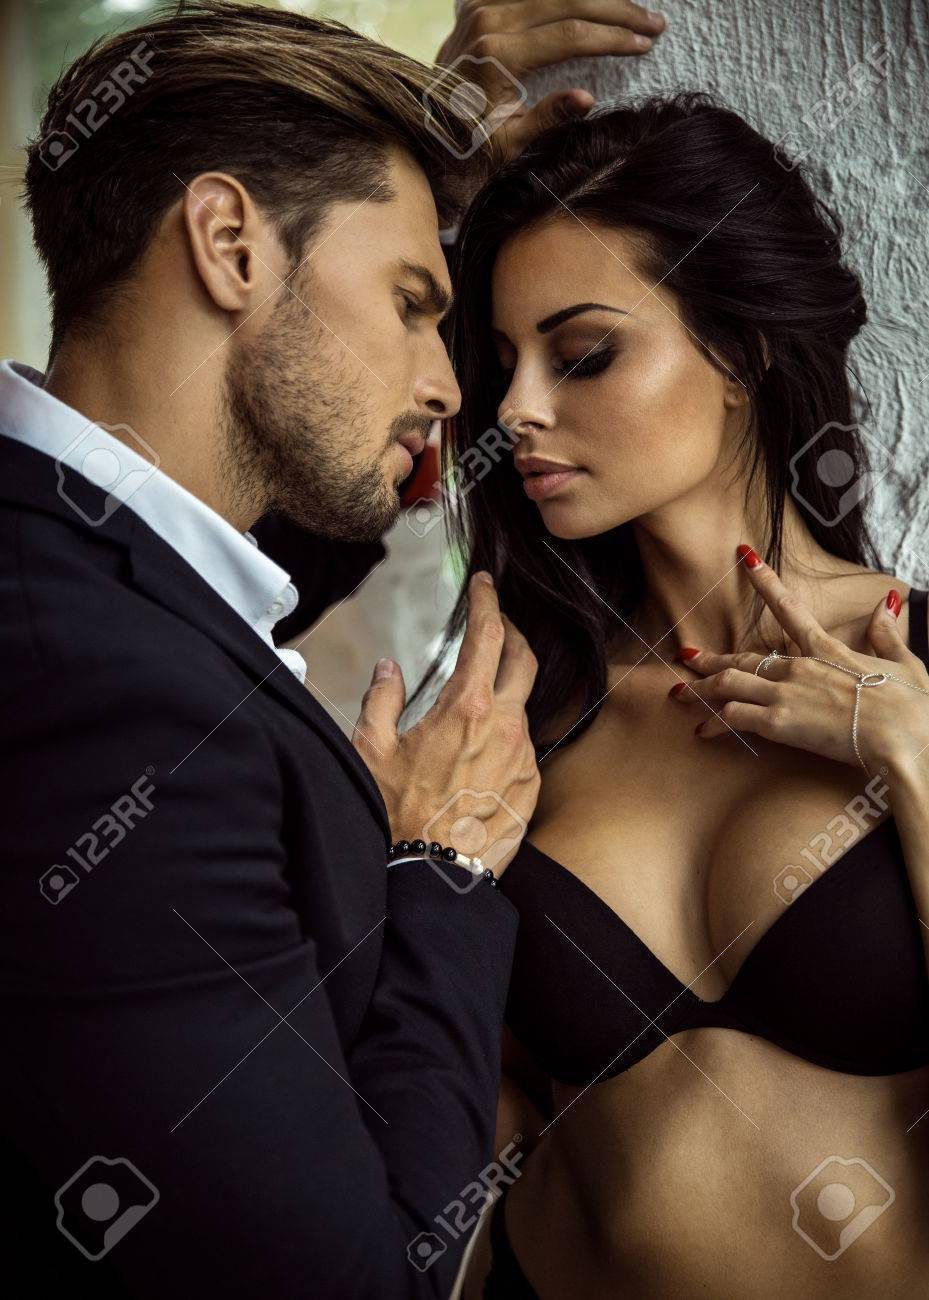 Sexy photos of man and woman